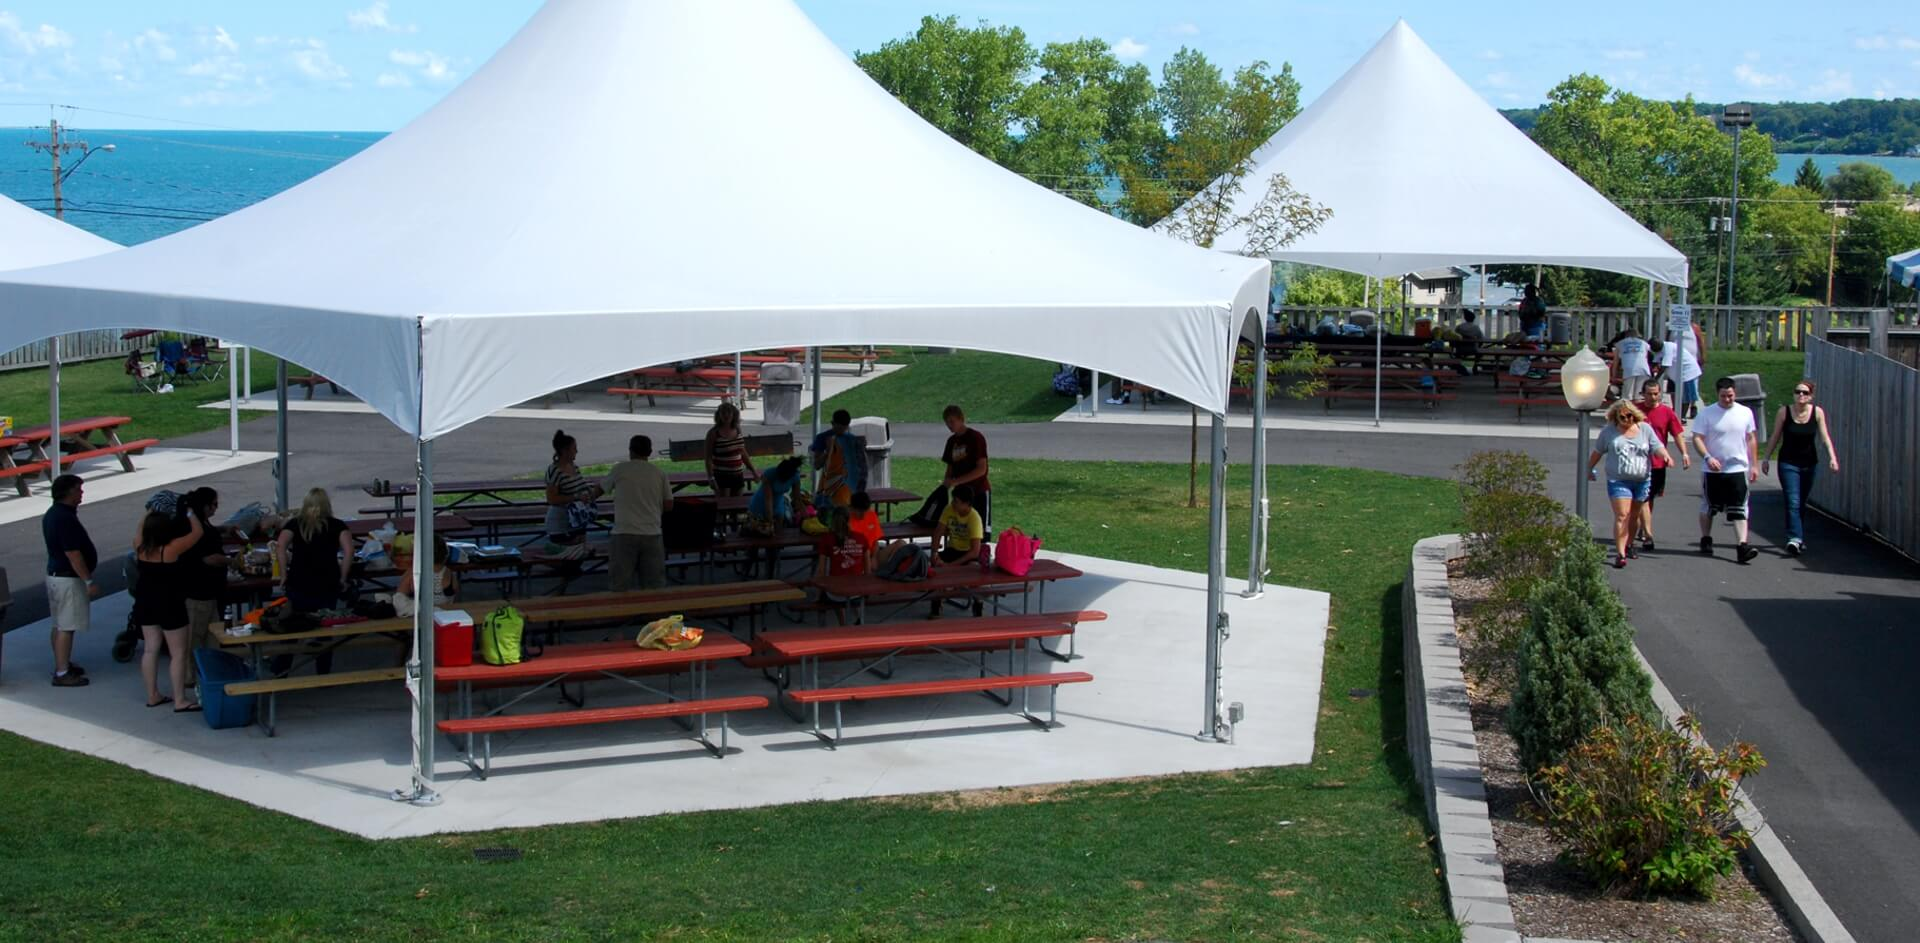 White Picnic Grove tents set up with picnic tables at Seabreeze.